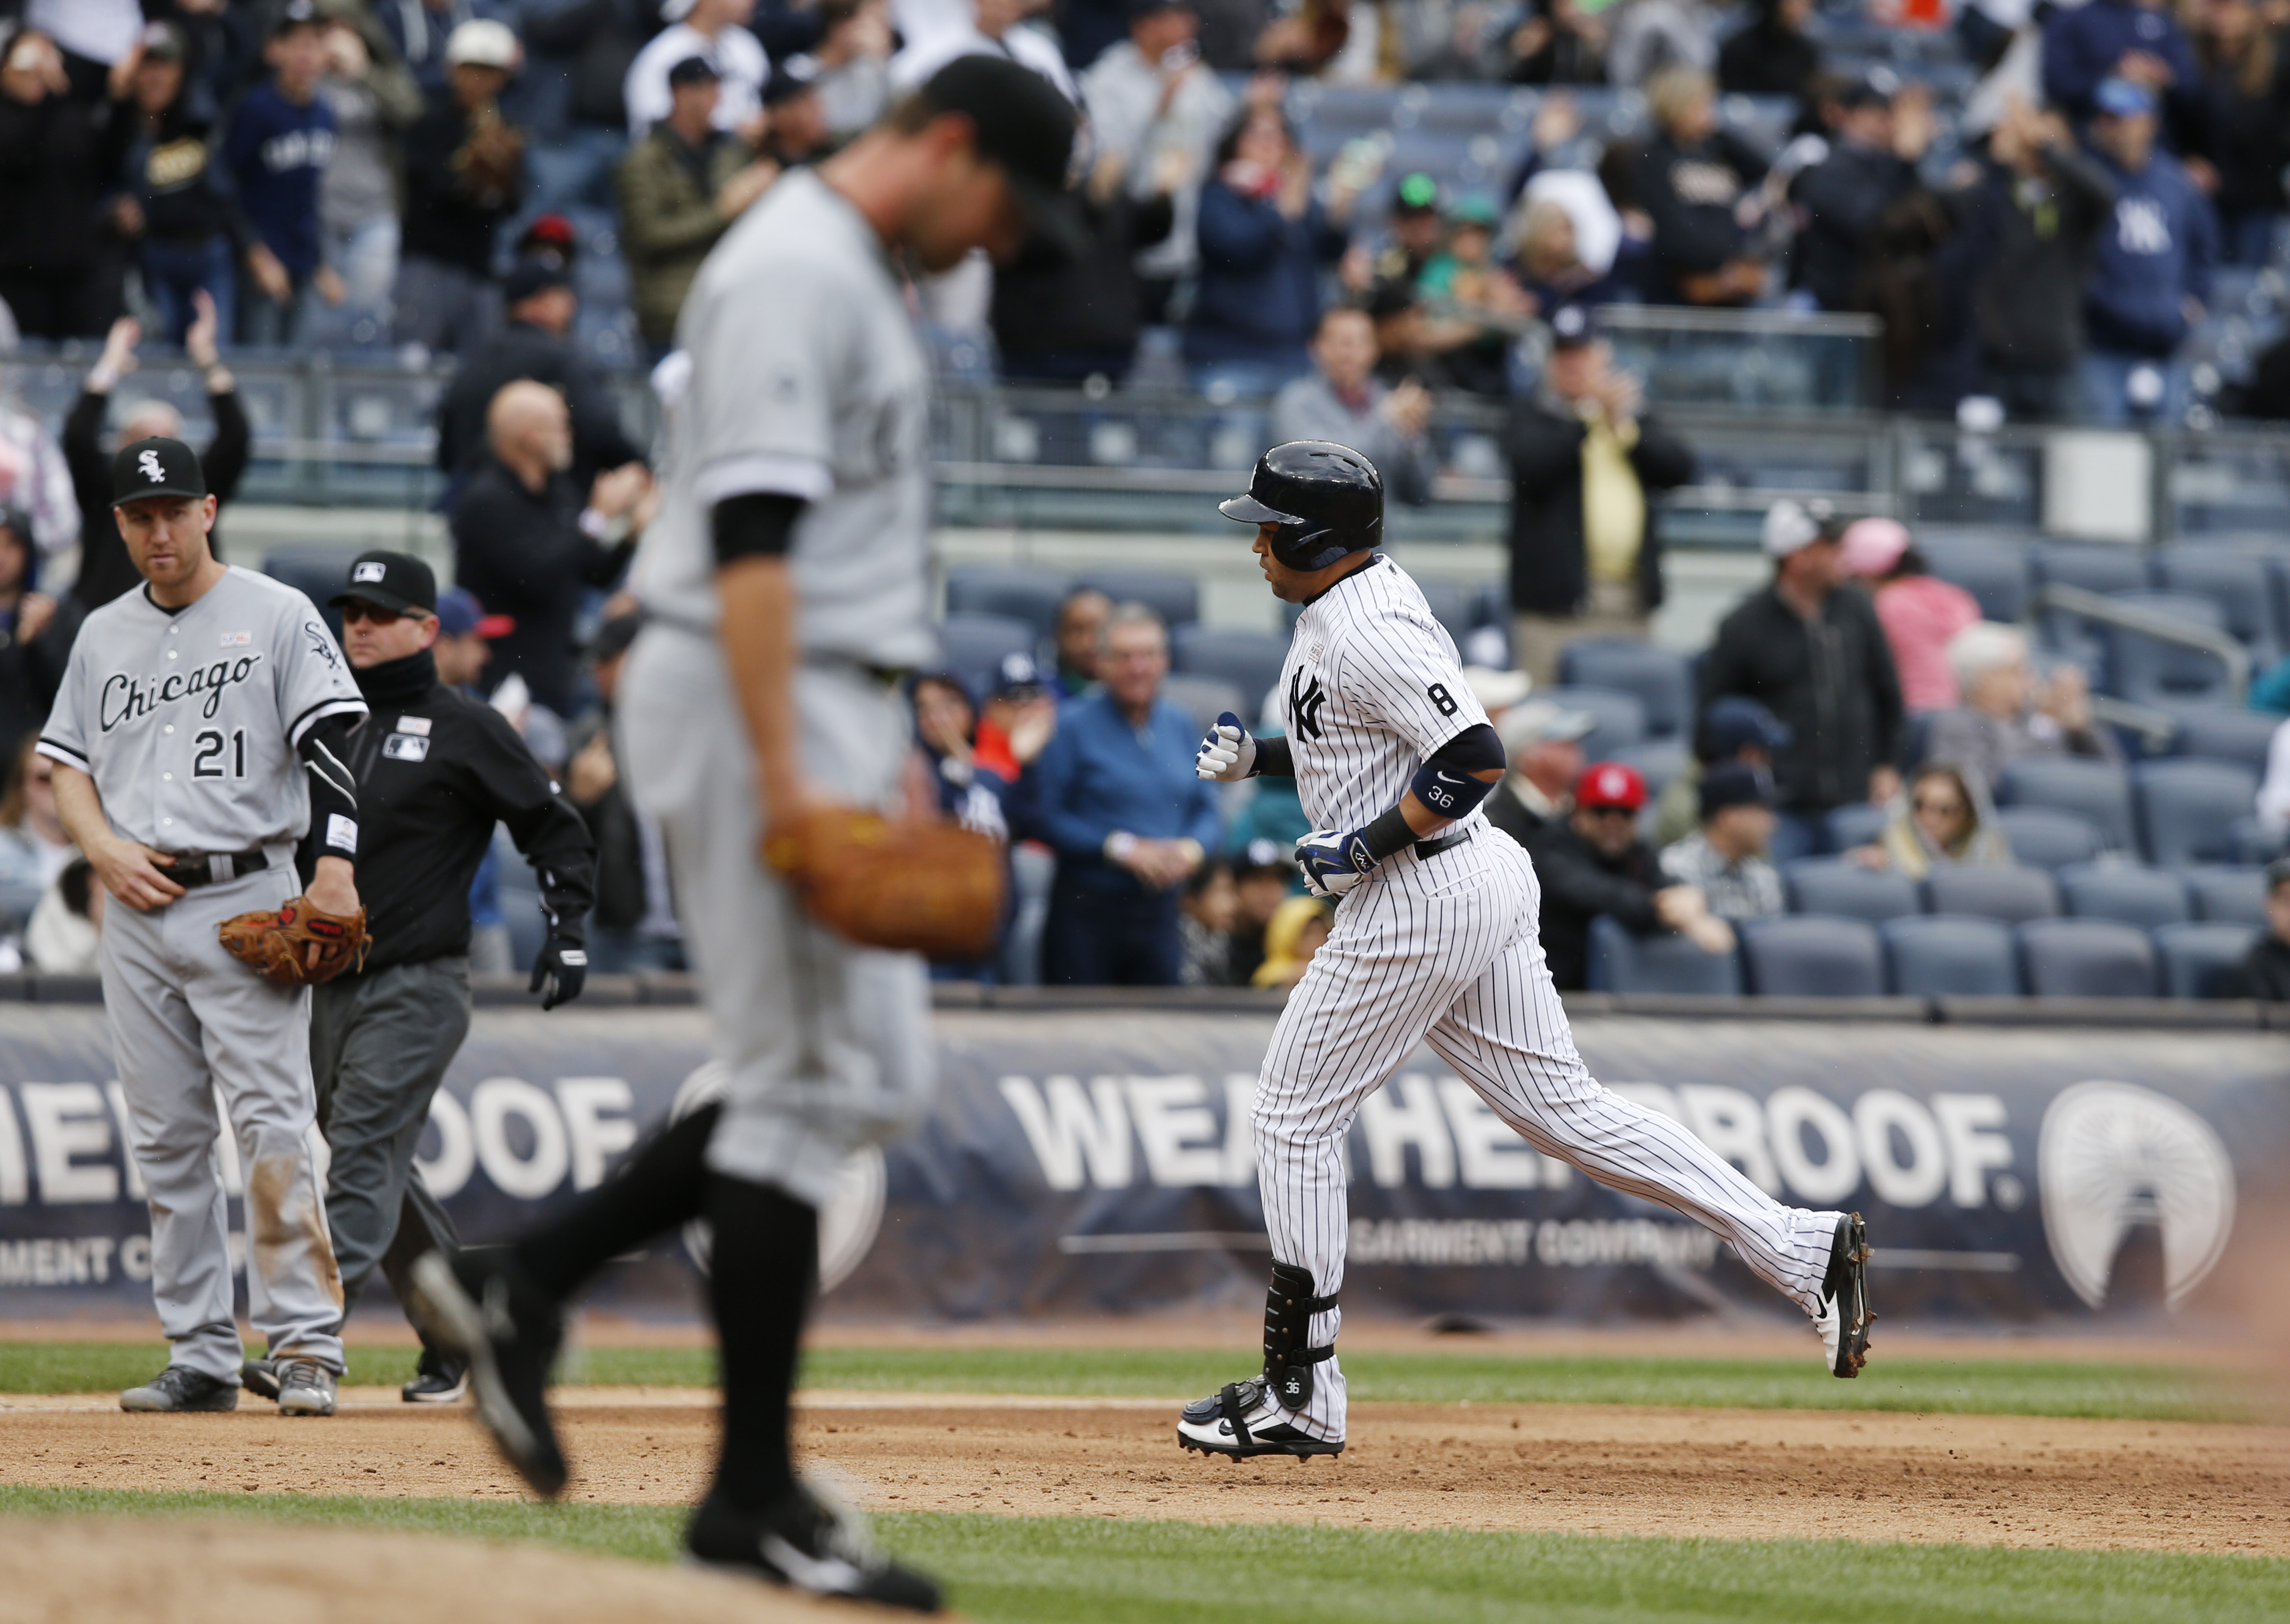 New York Yankees designated hitter Carlos Beltran, right, runs the bases after hitting a two-run, home run off Chicago White Sox relief pitcher Zach Duke, center, during the sixth inning of a baseball game in New York, Sunday, May 15, 2016. Chicago White